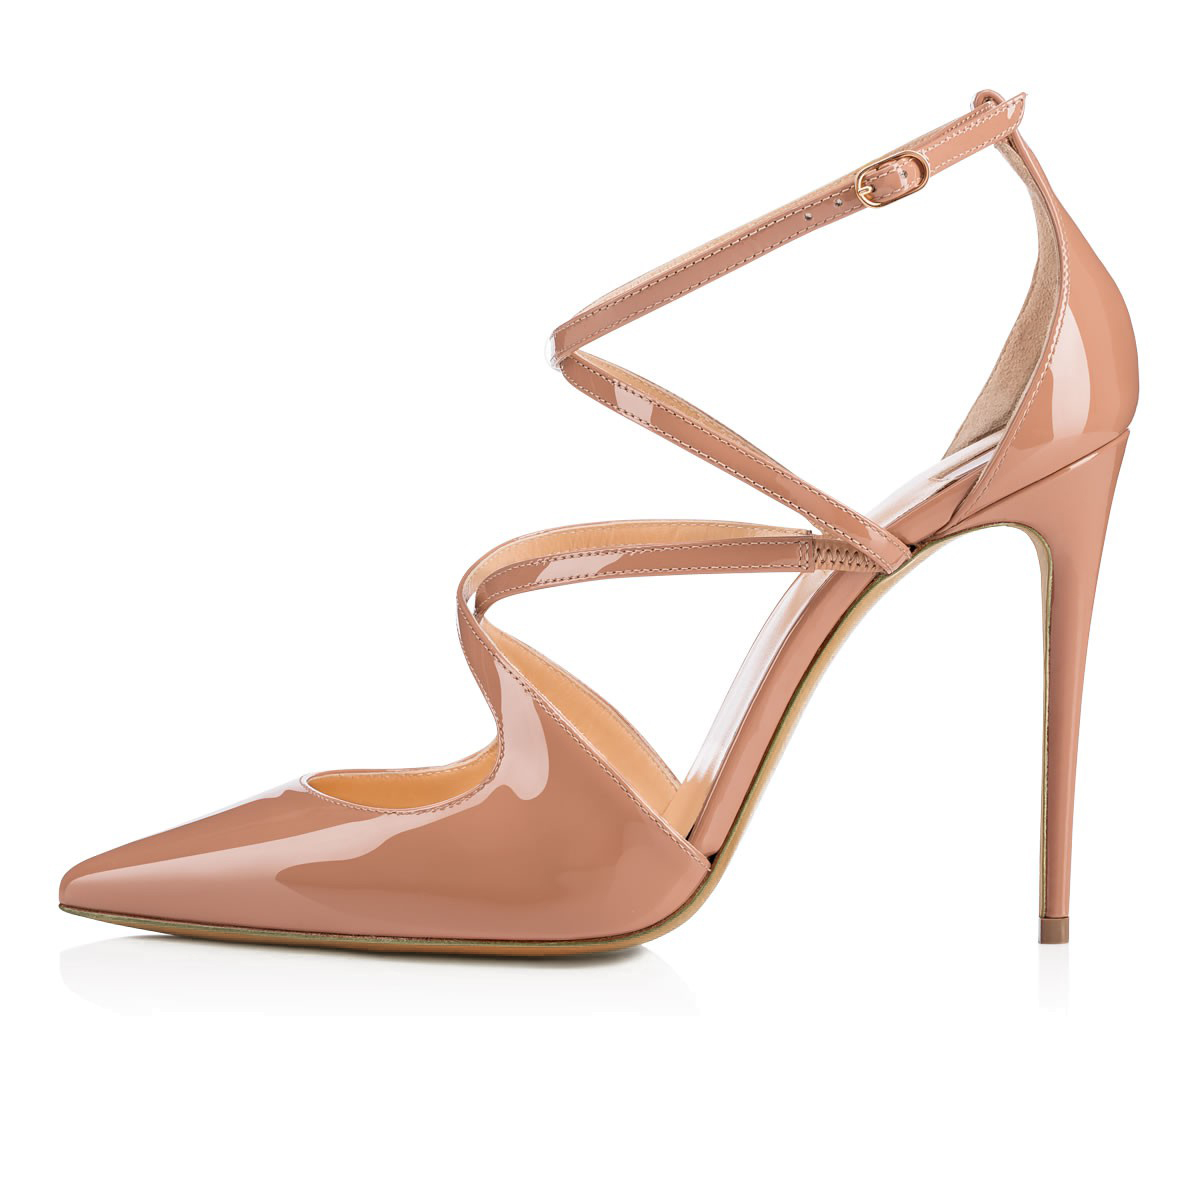 Ladies Stiletto Black Summer Shoes 2019 Red Patent Dress Shoes Women Nude Wedding <strong>Heels</strong> Pointed Toe High <strong>Heel</strong> Strappy Pumps